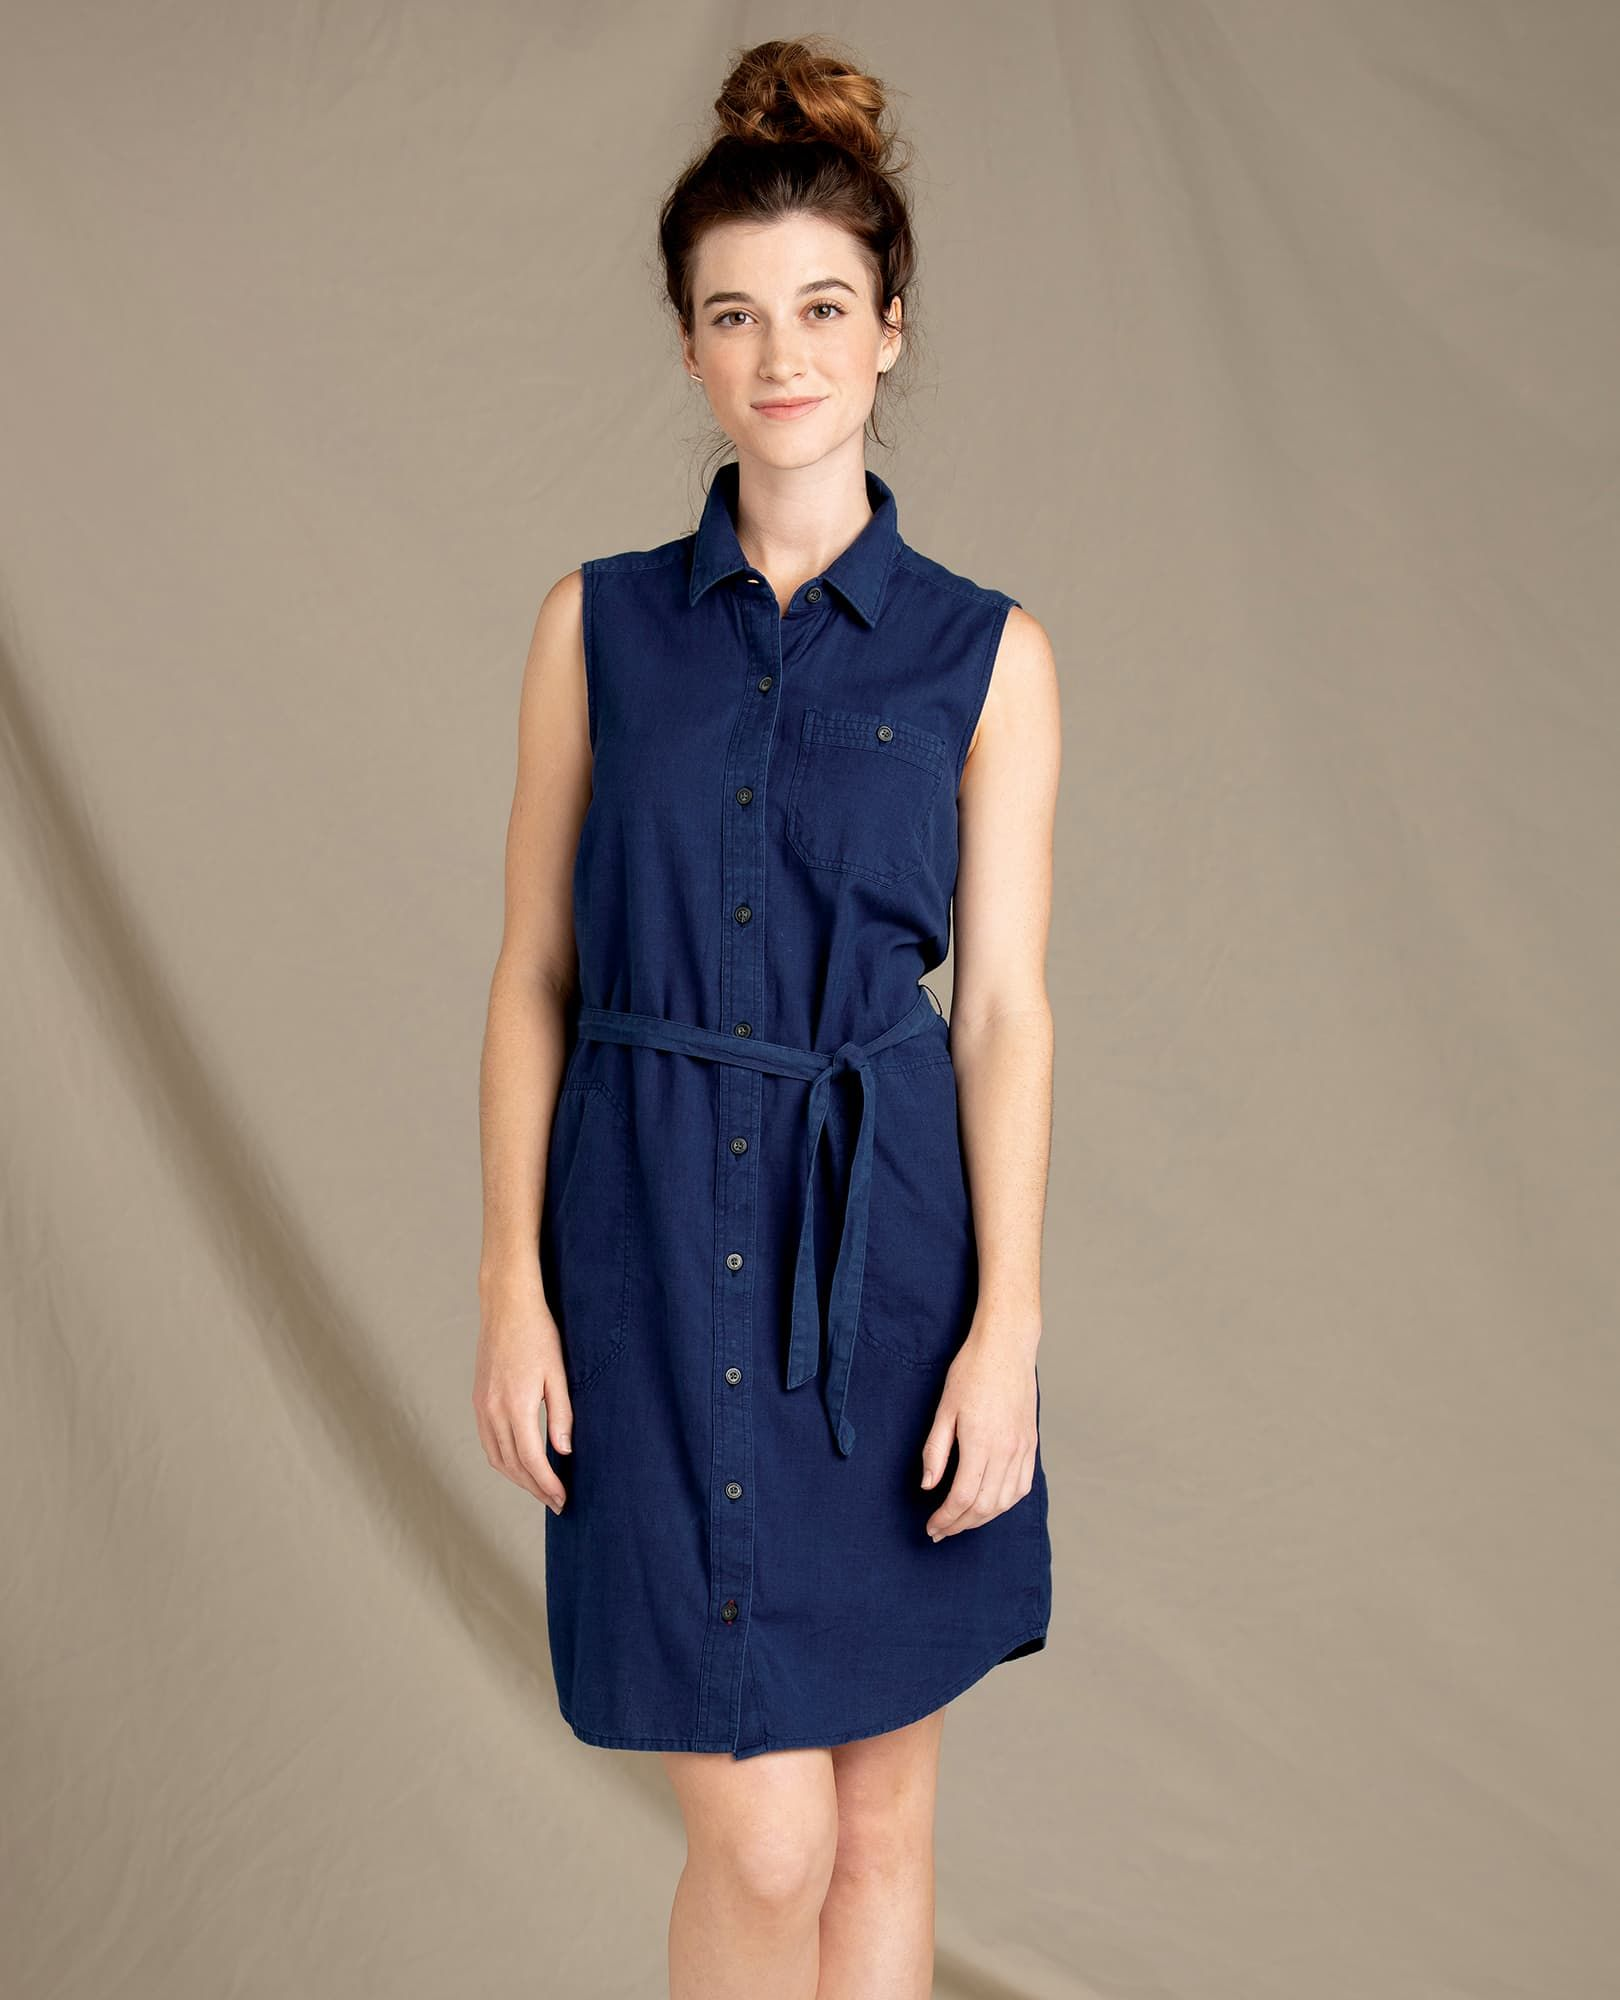 8e414546b0b Women's Indigo Ridge Sleeveless Tie Dress | 100% Organic Cotton Dress by  Toad&Co